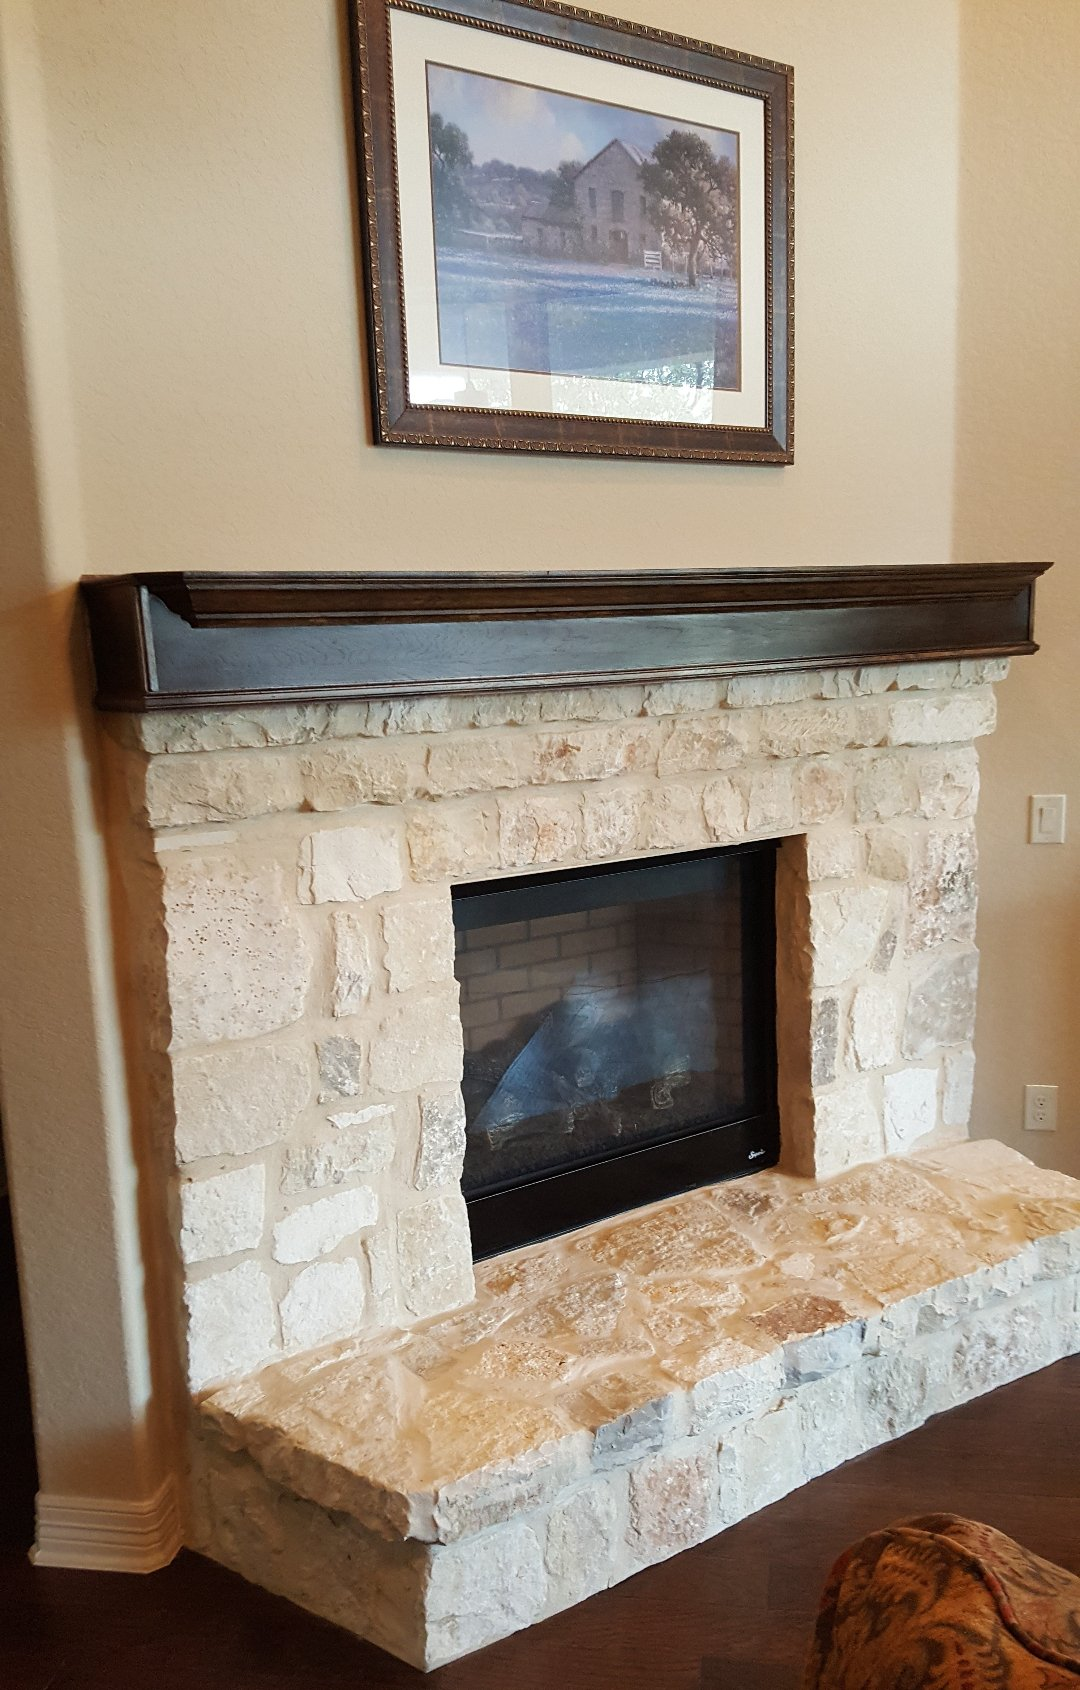 Espresso Stained Hickory Wood Mantel  Completes Beautiful Natural Rock Fireplace